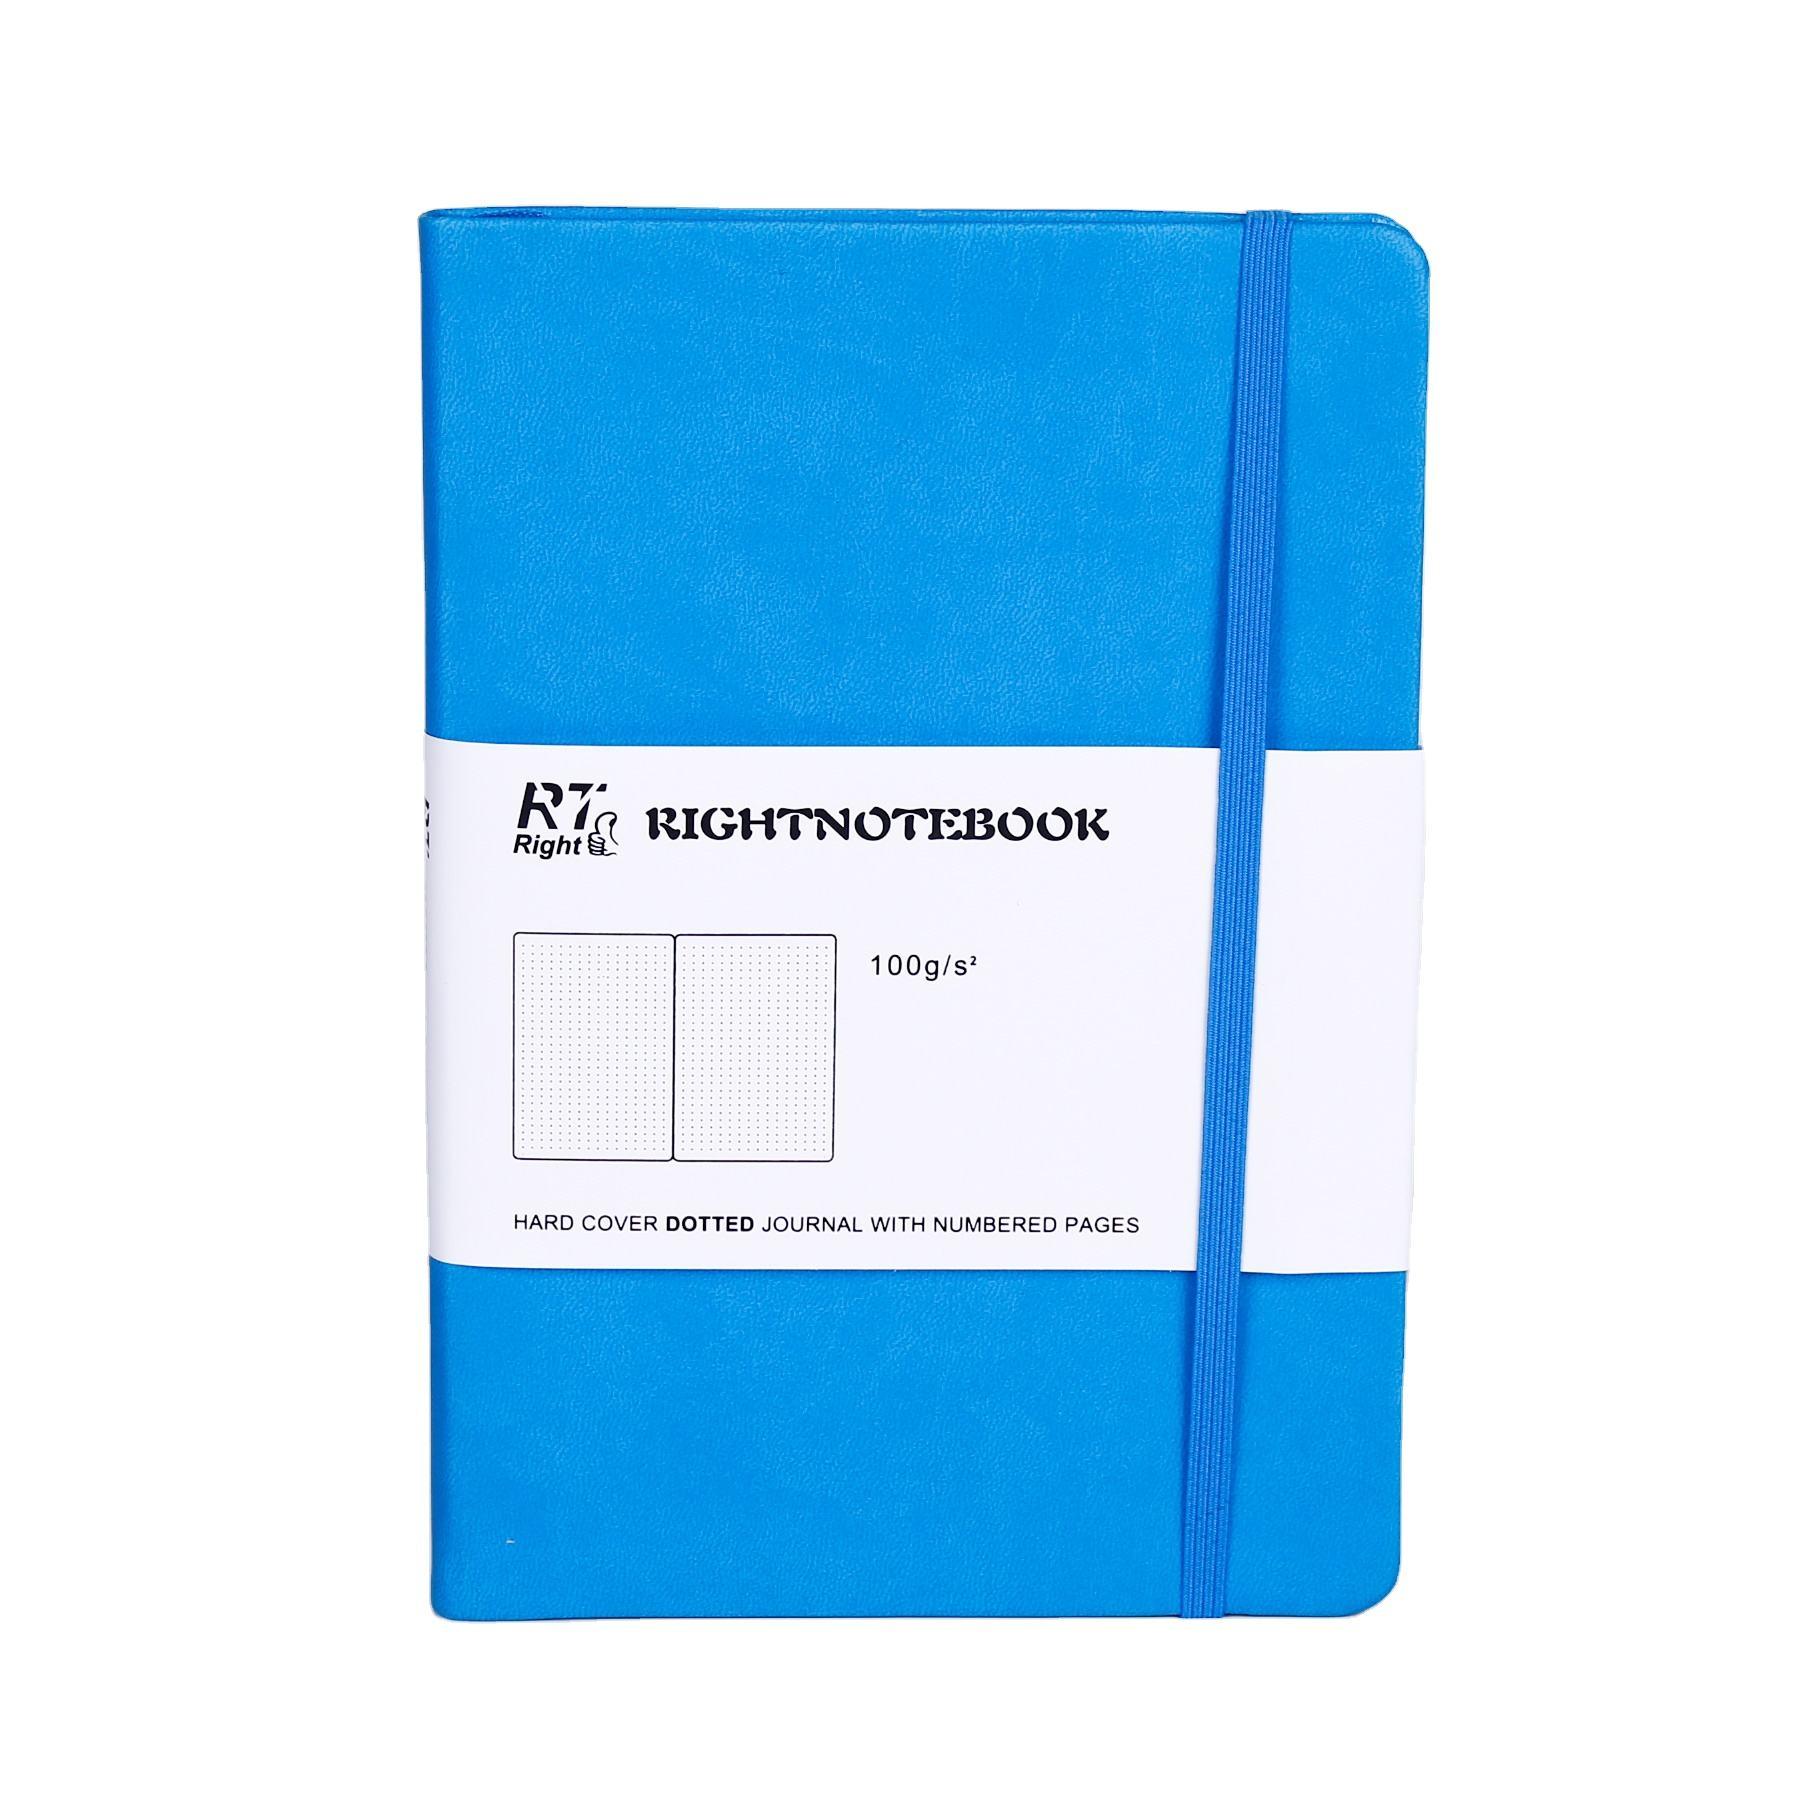 design A5 blue leather 200 page ruled writing note books economic notebook journal with pocket